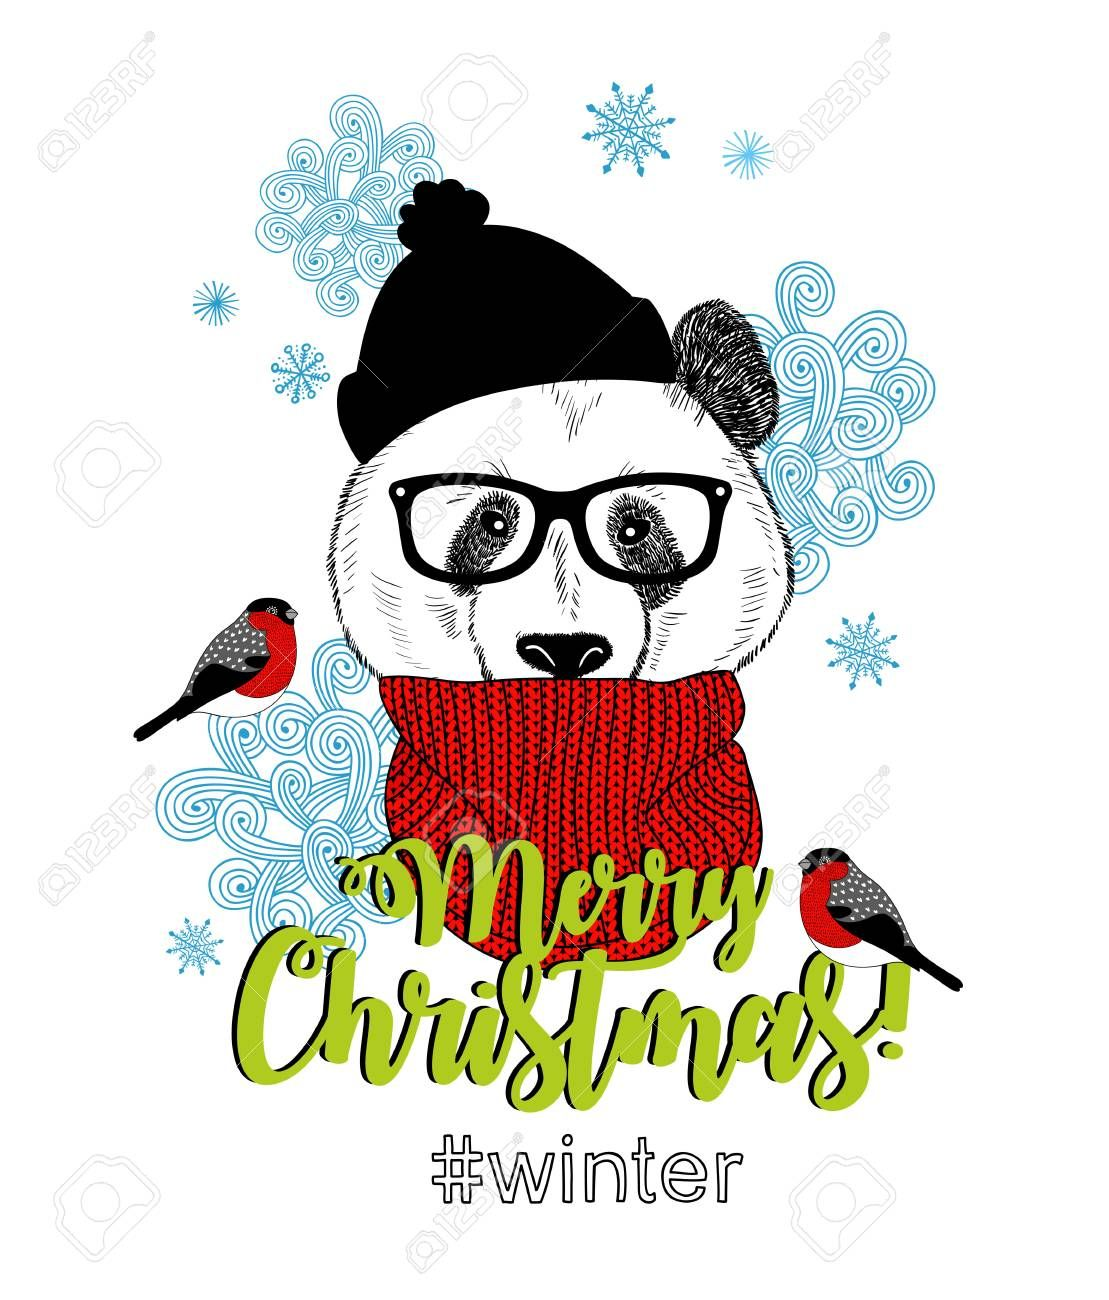 Merry Christmas card with funny panda animal in modern hipster style. Vector illustration for winter holidays. , #sponsored, #funny, #panda, #animal, #Merry, #Christmas